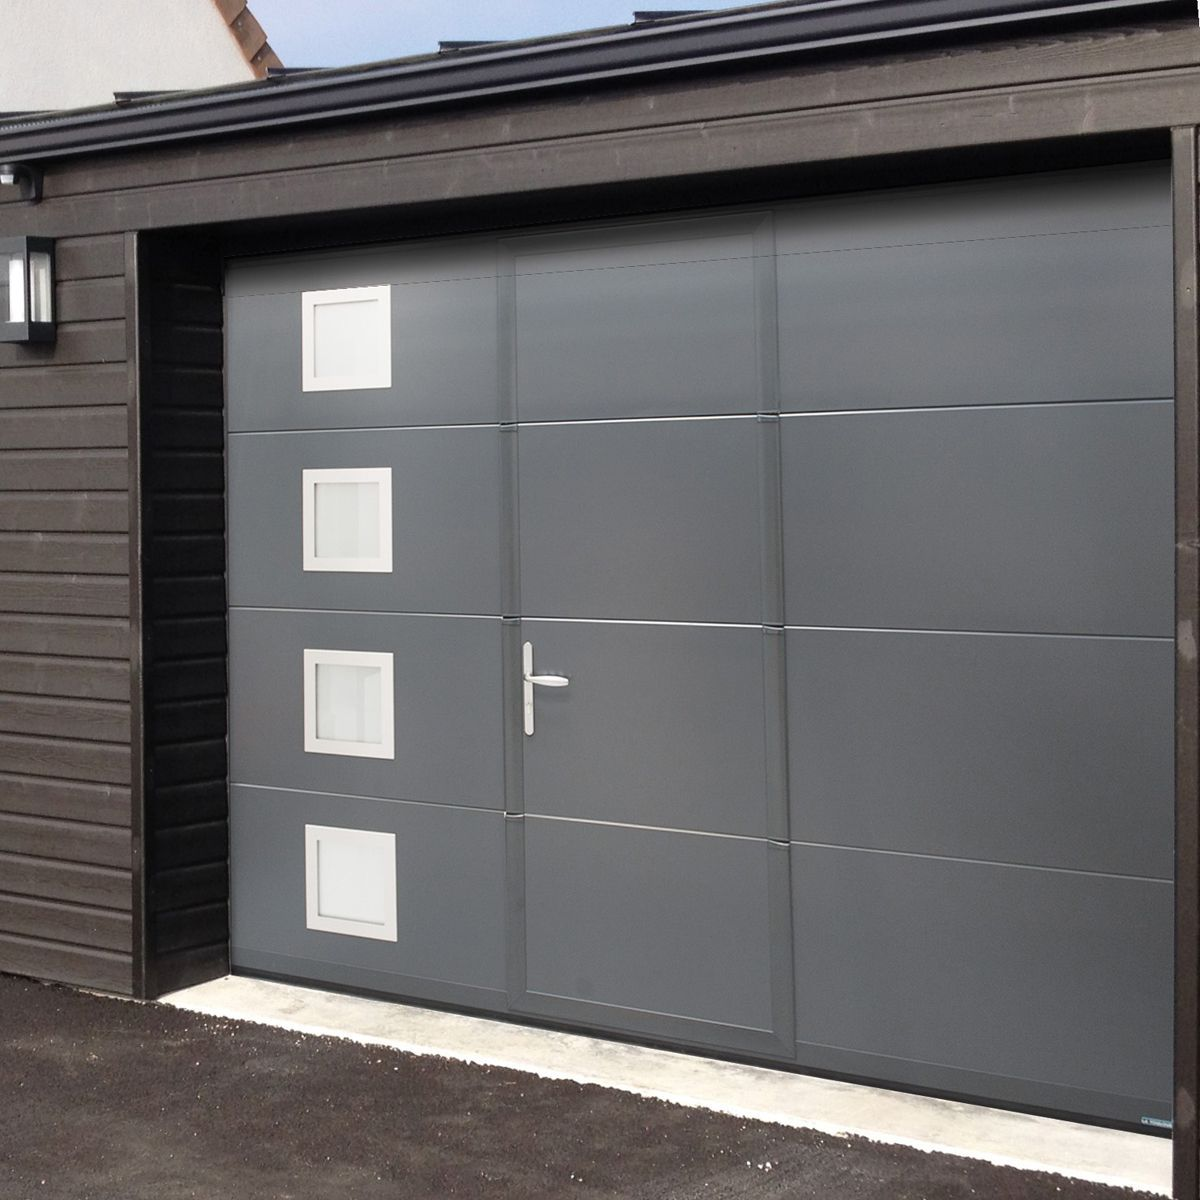 Portes de garage fabriqu es en france sur mesure isoferm for Installer chatiere porte garage